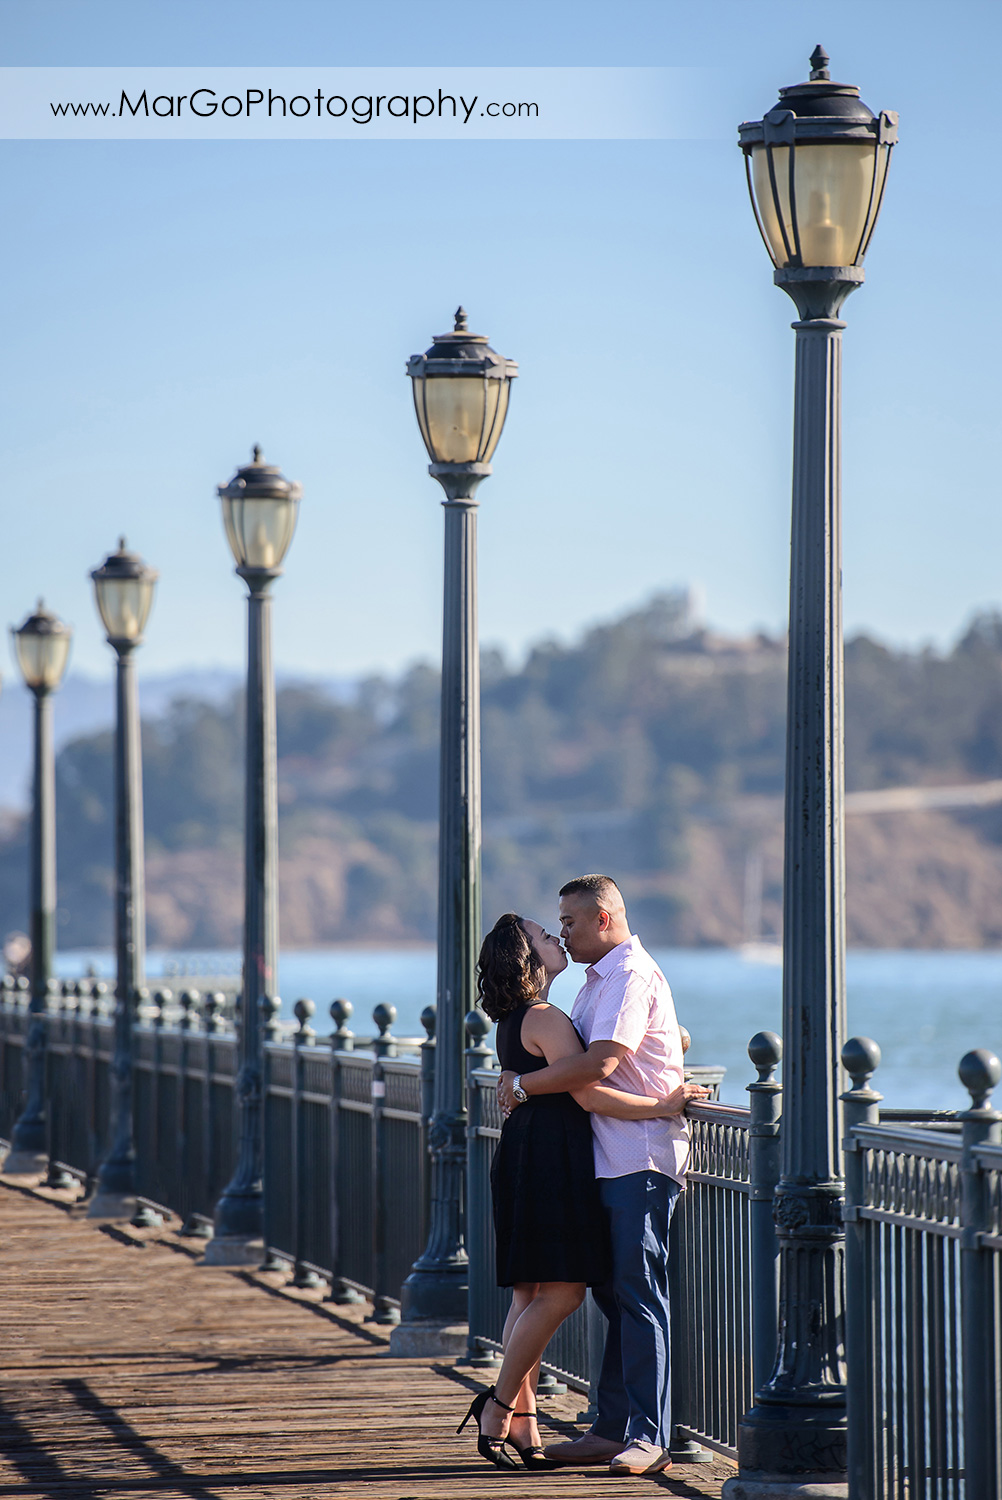 engagement session at Pier 7 in San Francisco - kissing couple